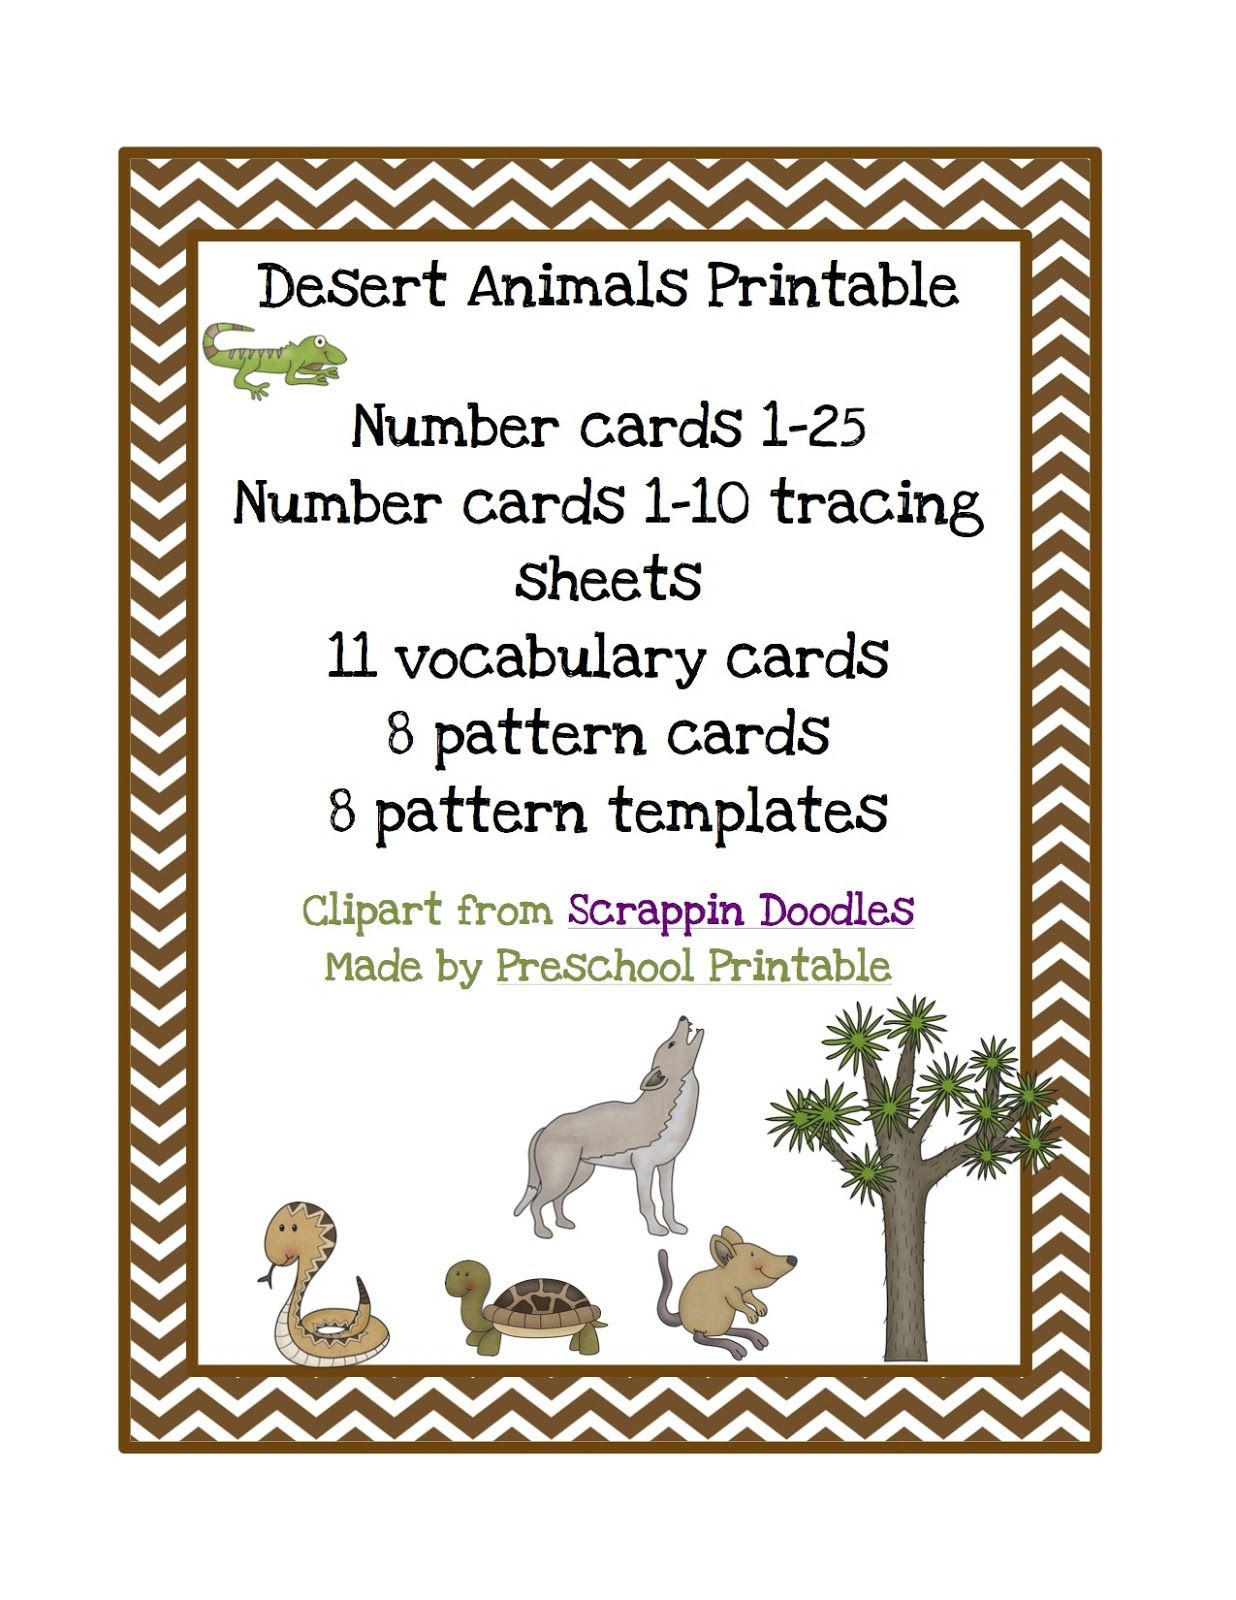 Preschool Printables Desert Animals Printable